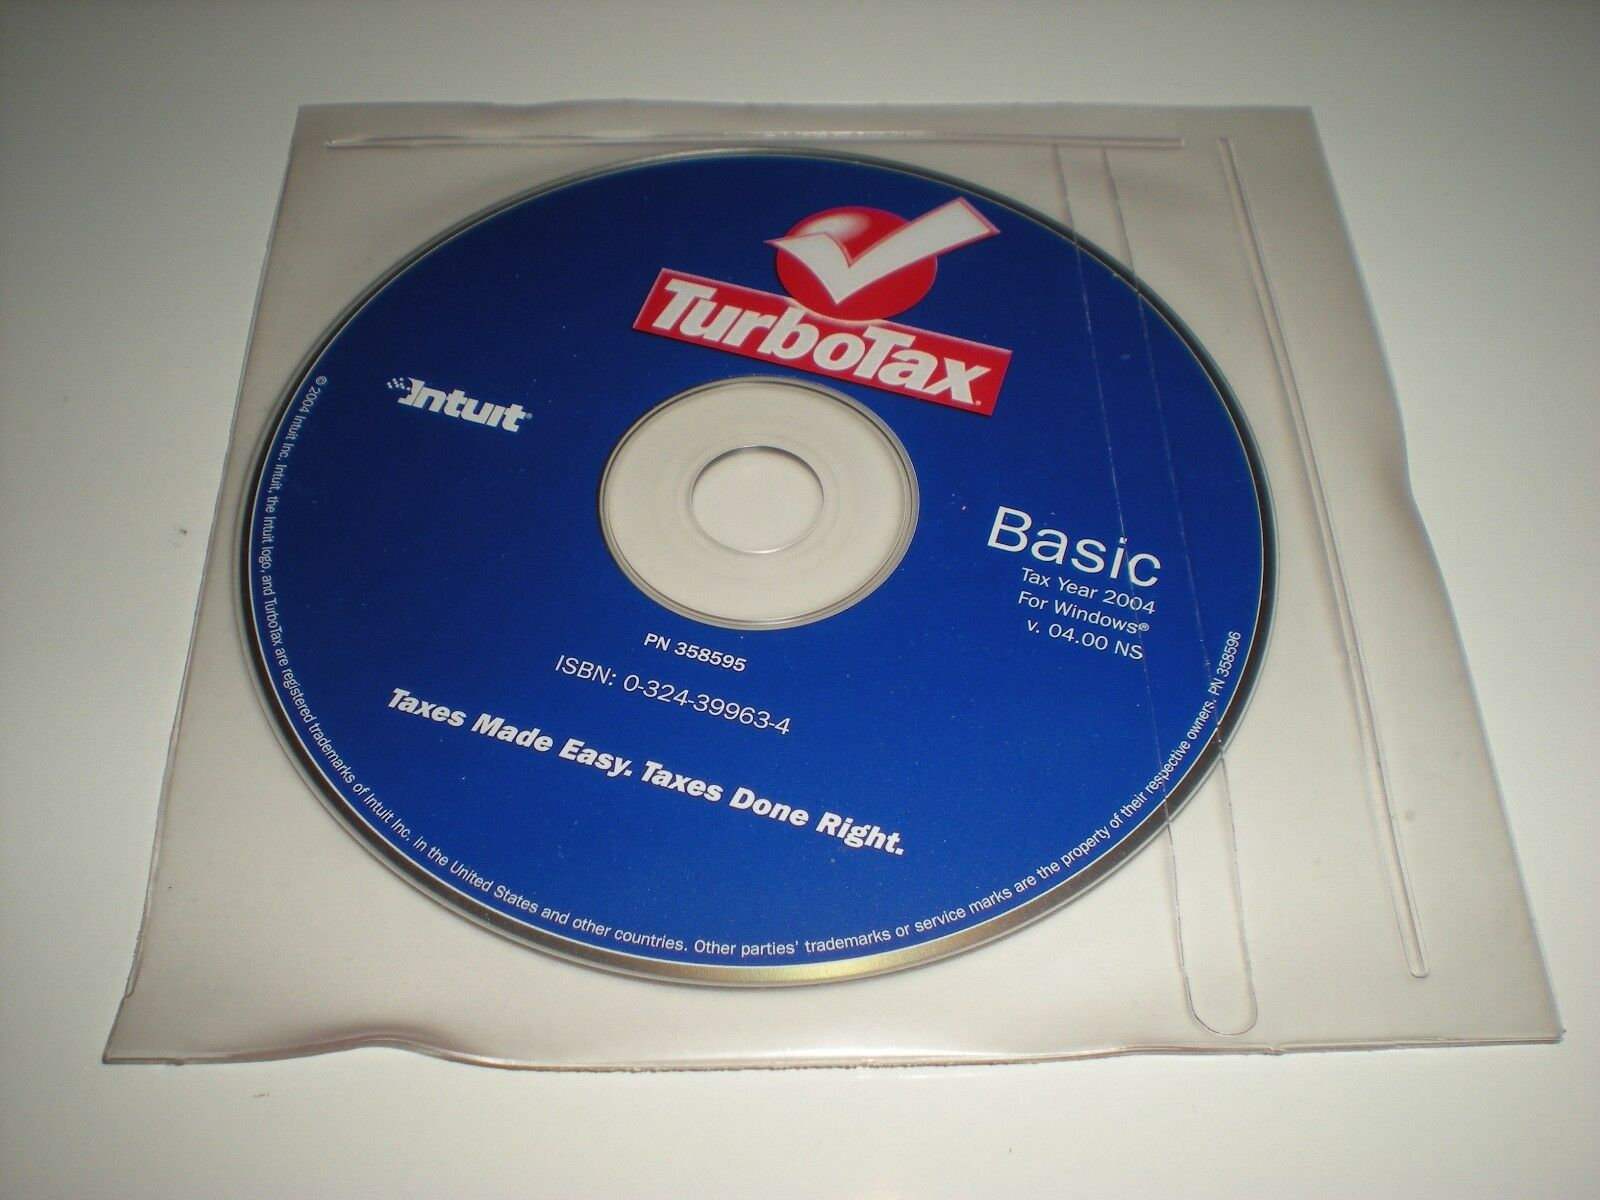 In sealed promotional sleeve New Turbotax 2004 Basic Turbo Tax For Windows.